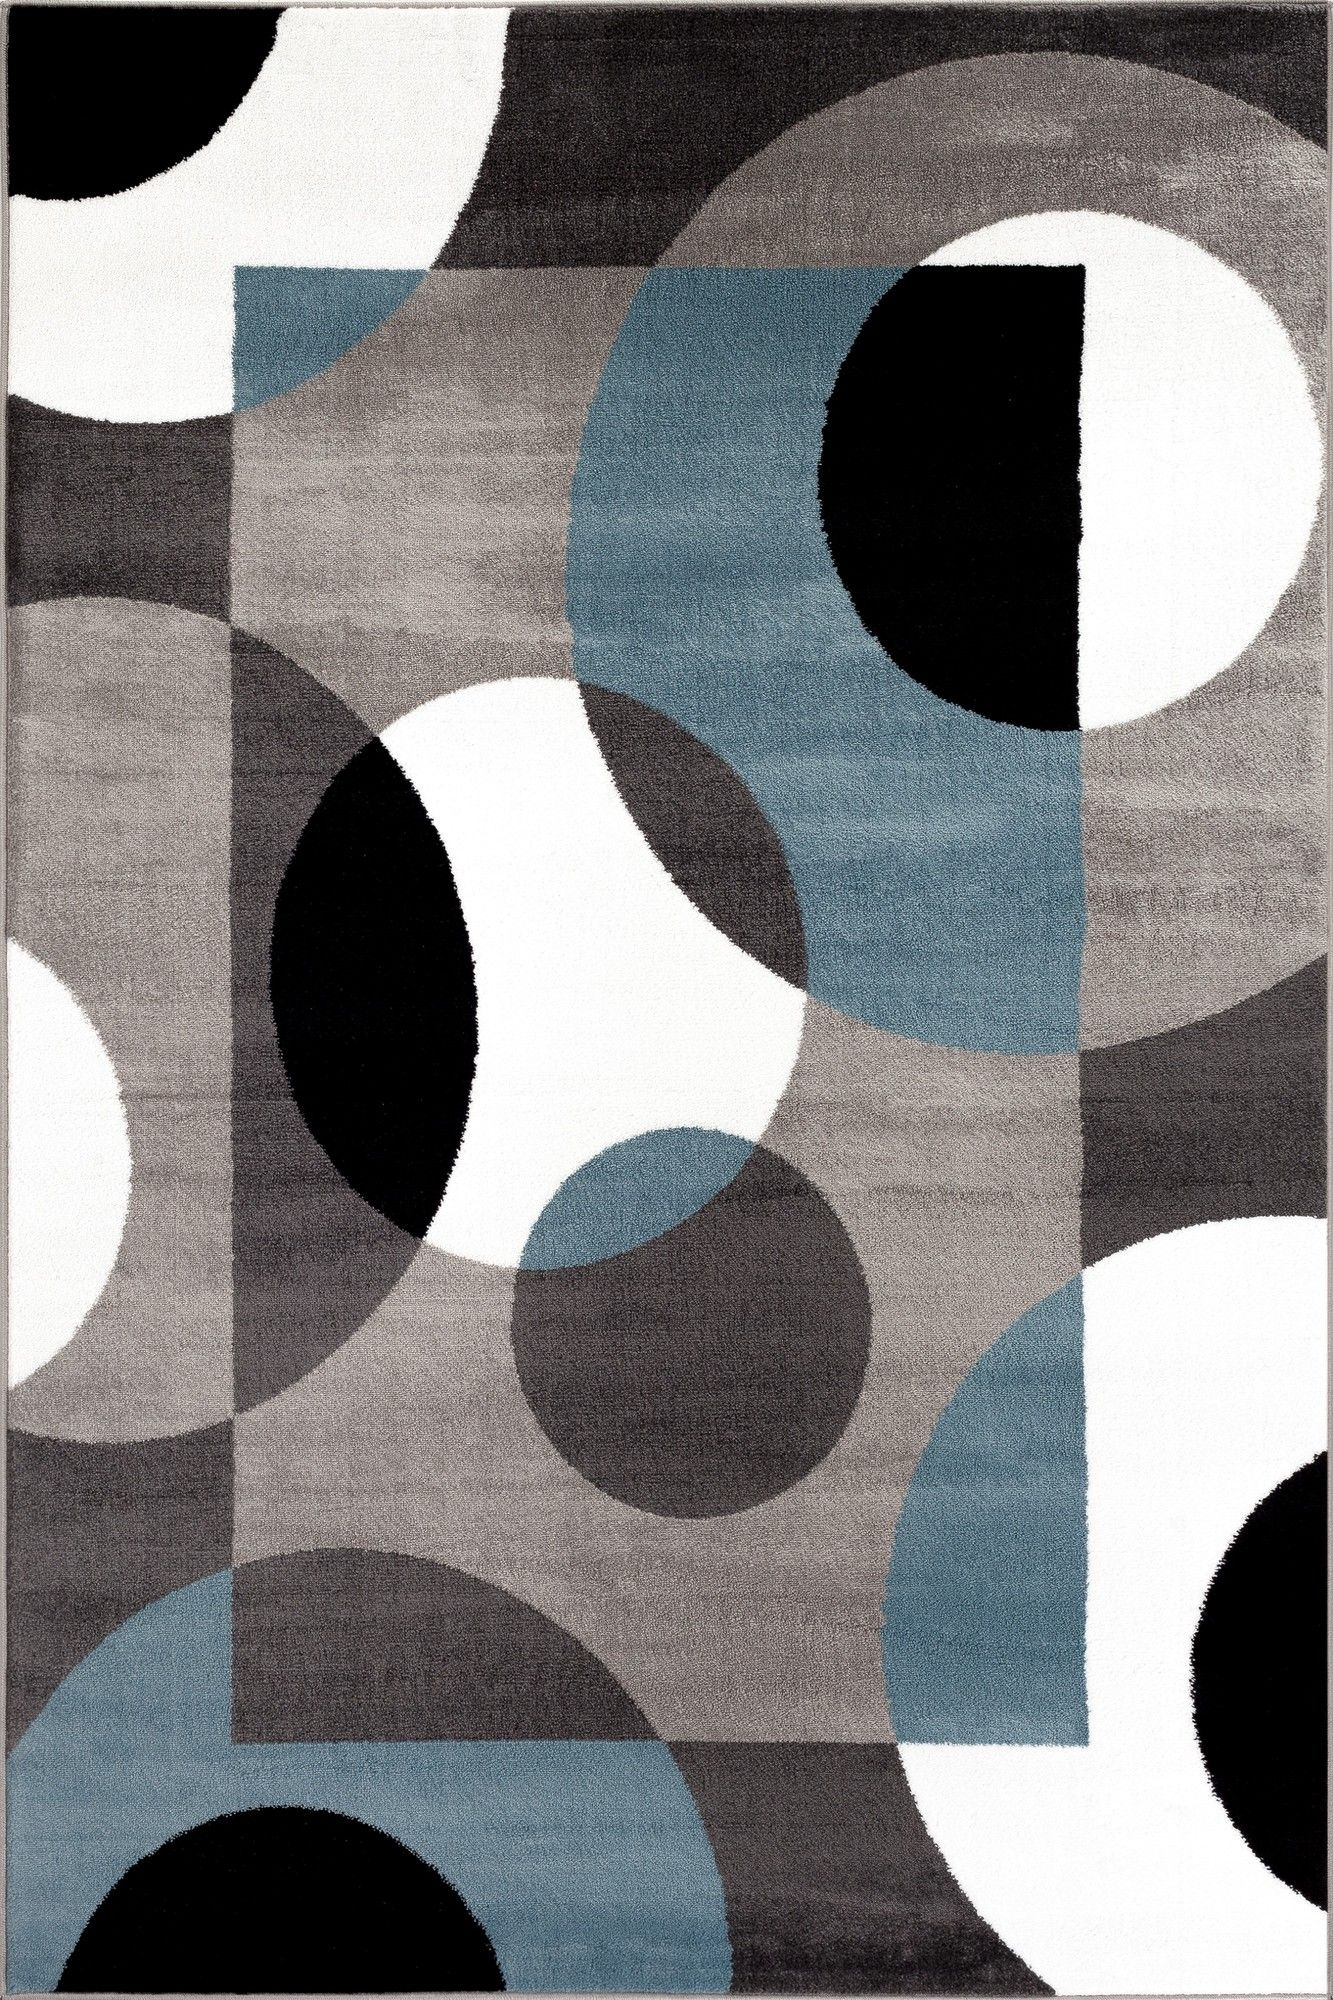 Alpine Blue Area Rug Products In 2019 Area Rugs Contemporary Area Rugs Blue Area Rugs